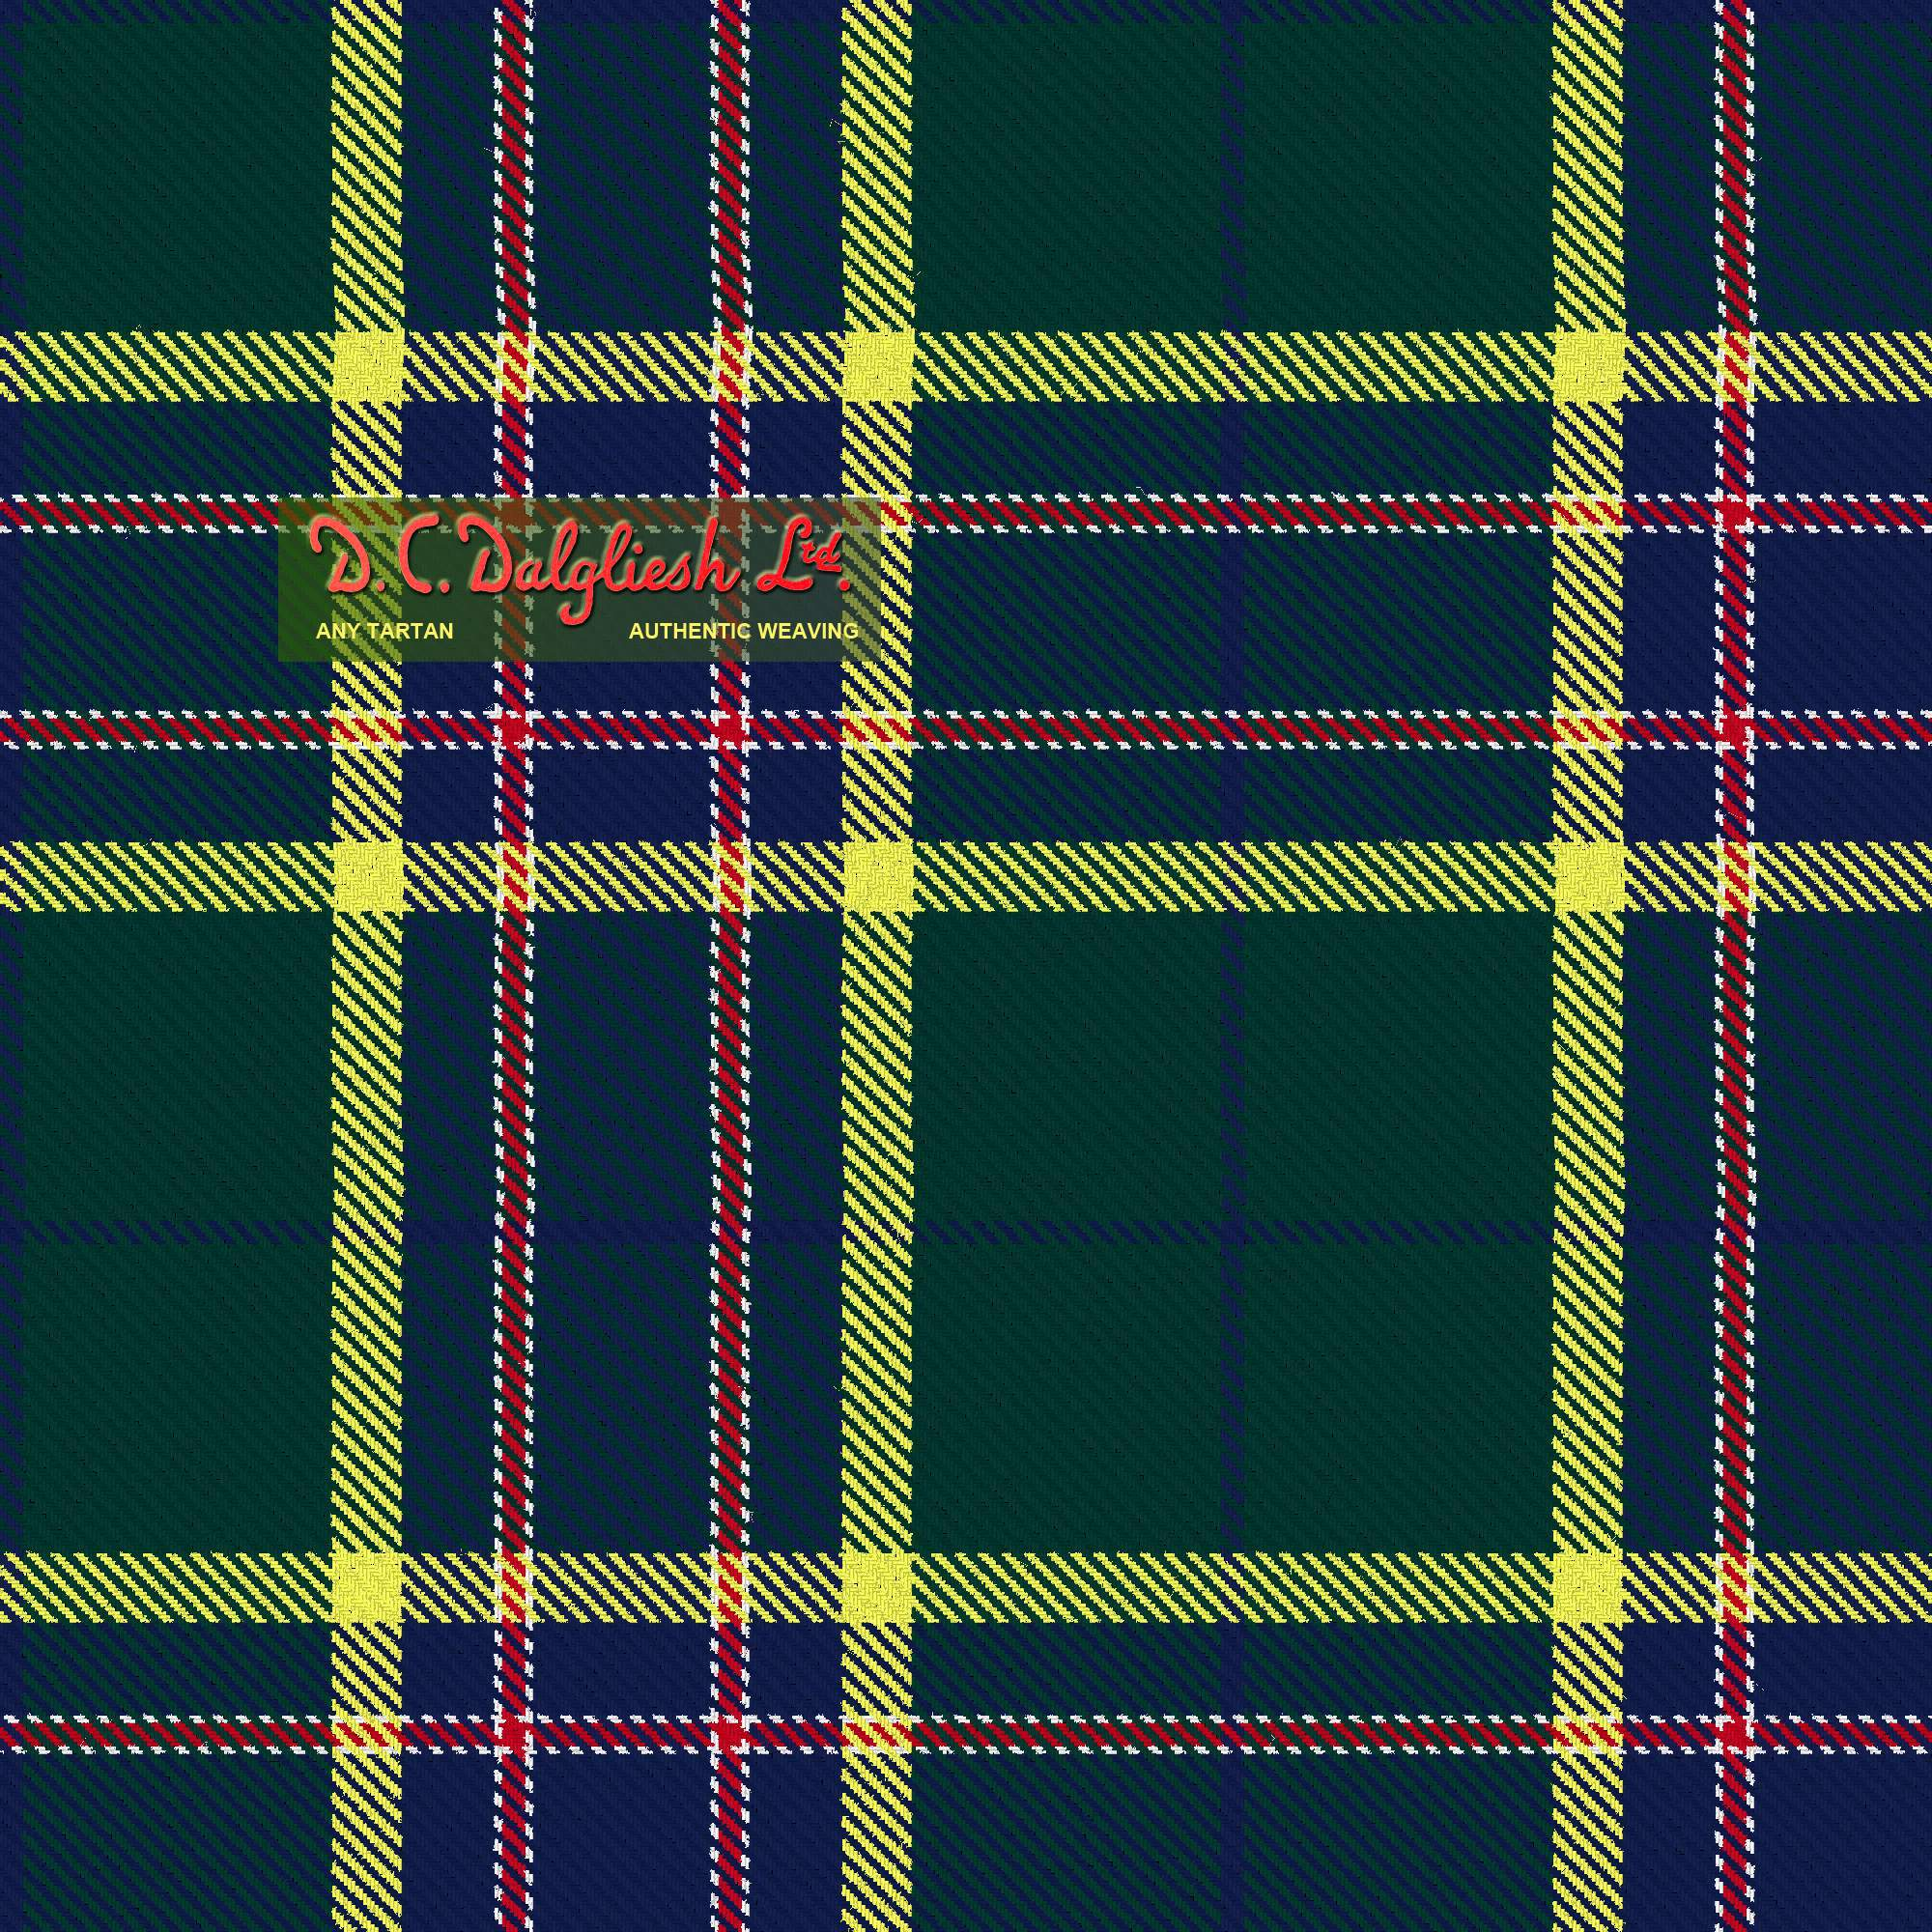 Pictou County Fabric By Dc Dalgliesh Hand Crafted Tartans